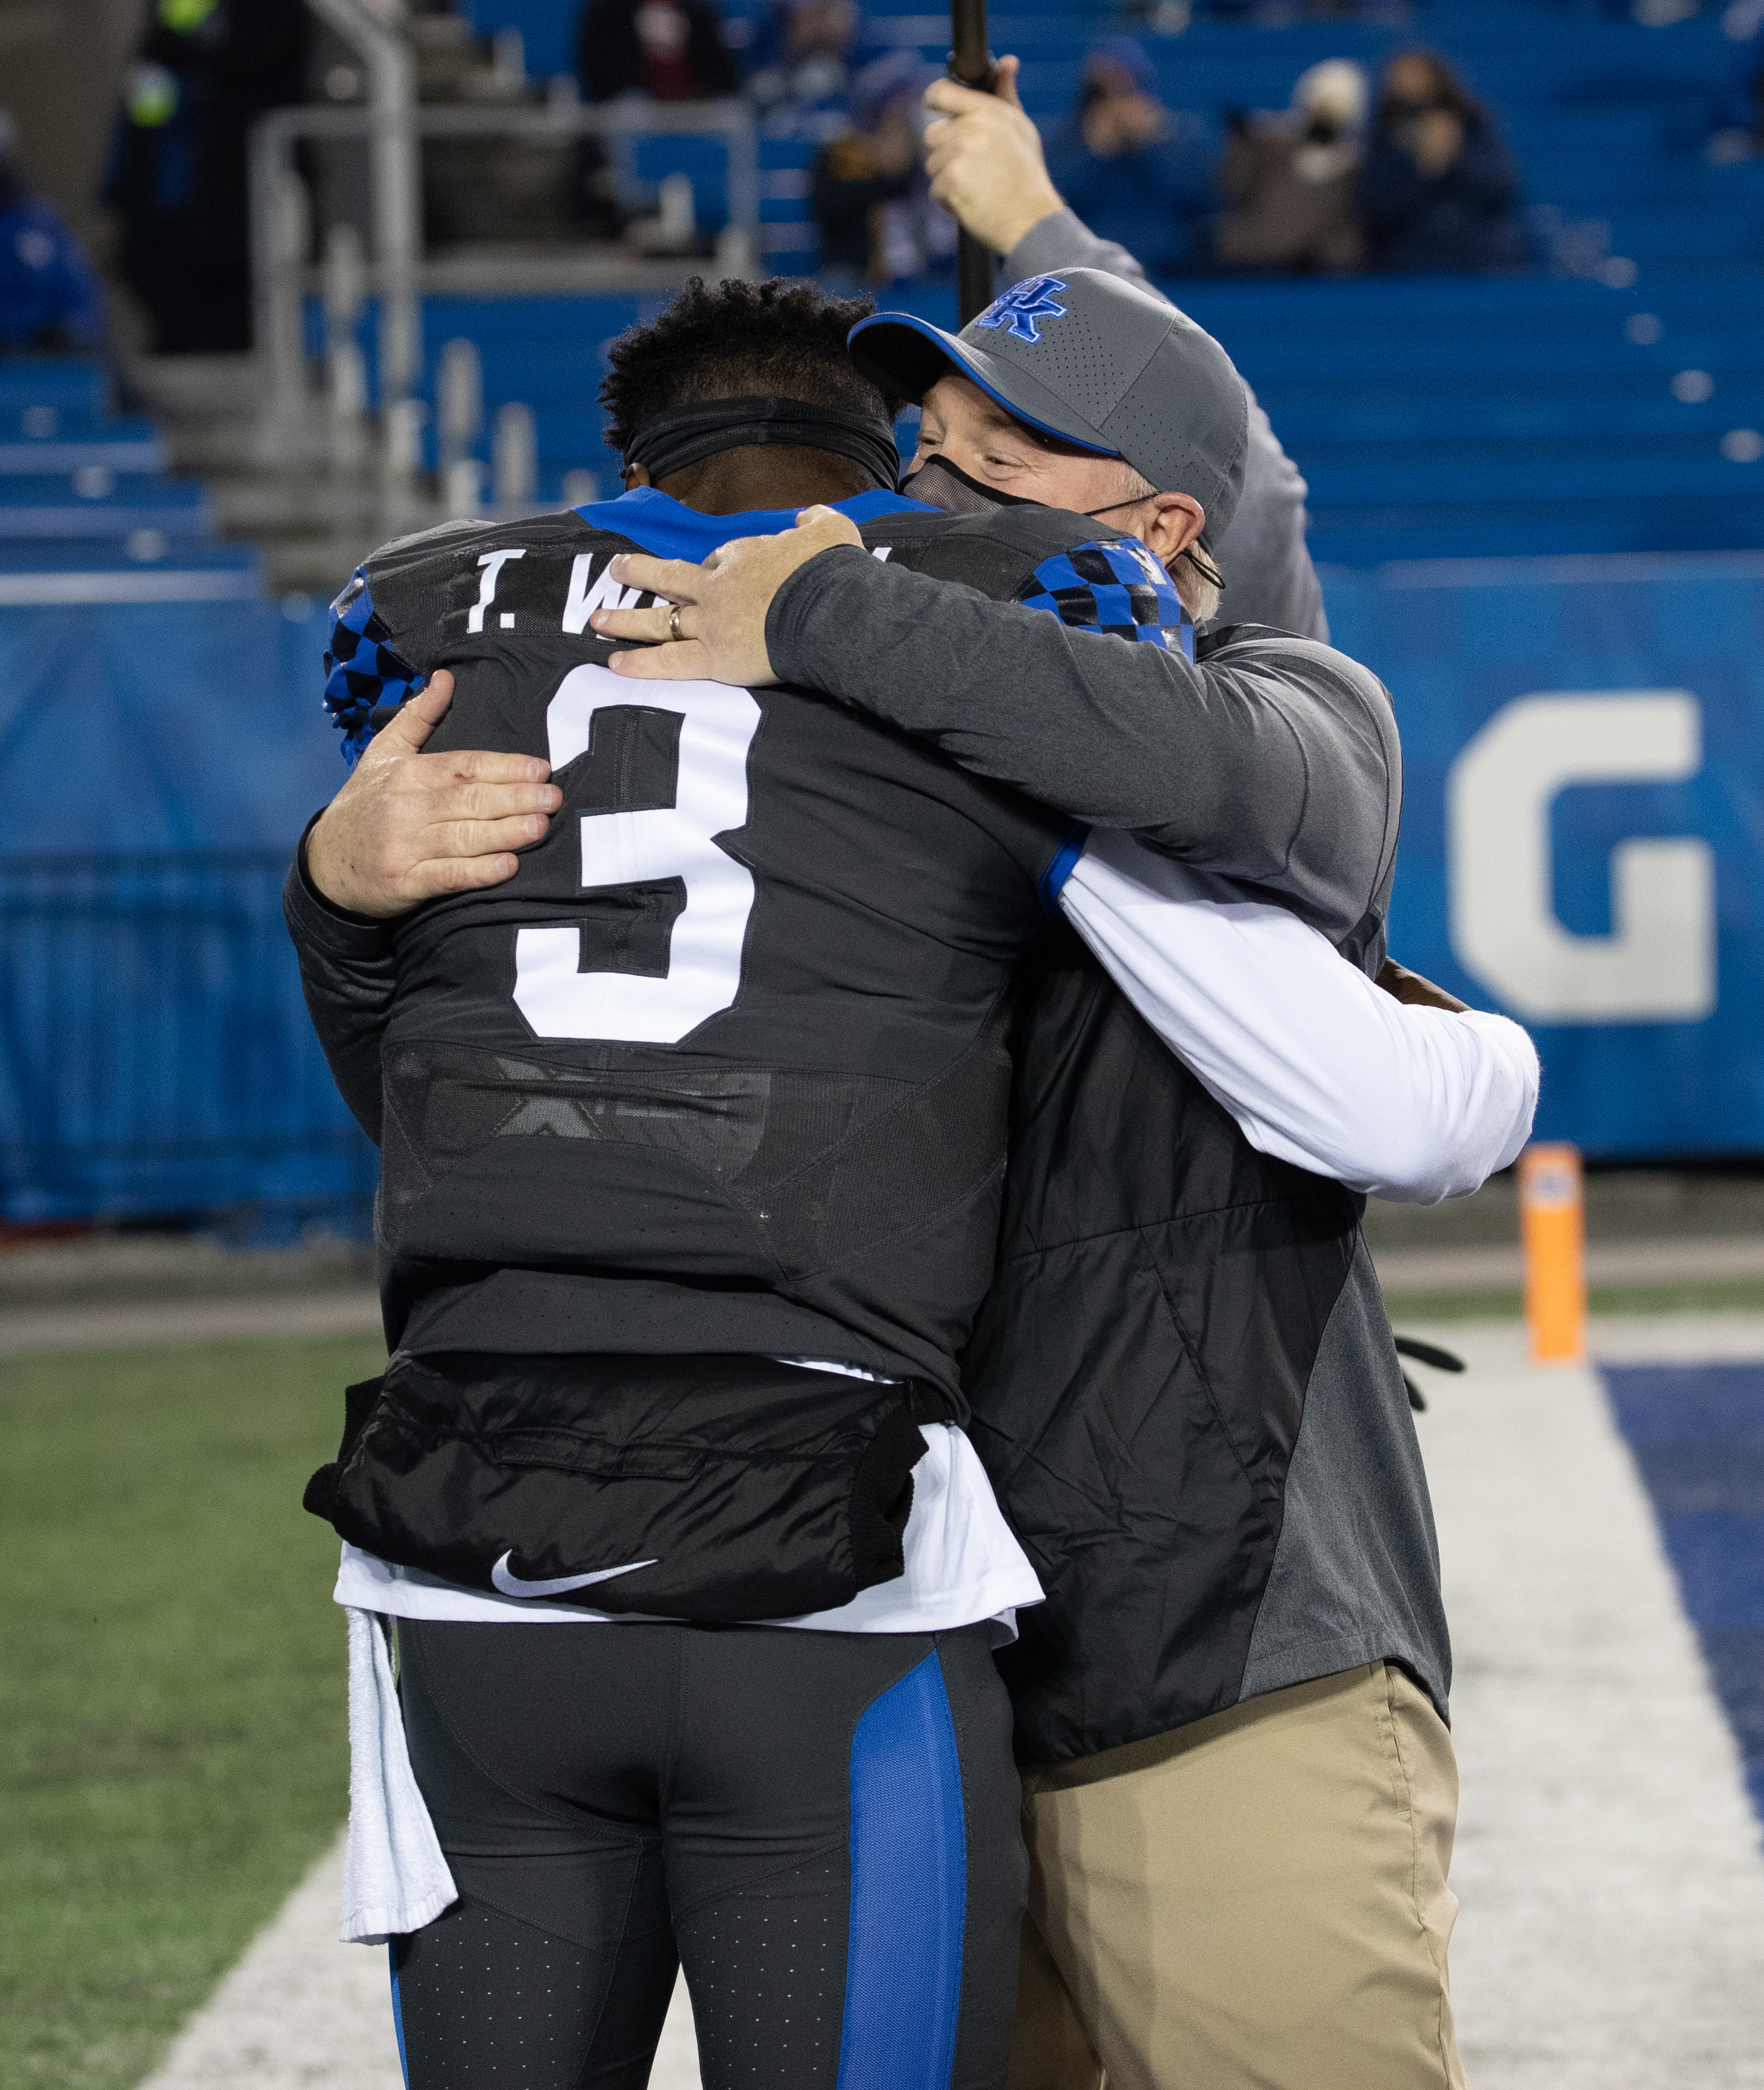 Terry Wilson #3 of the Kentucky Wildcats hugs head coach Mark Stoops before the game against the South Carolina Gamecocks at Kroger Field on December 5, 2020 in Lexington, Kentucky.